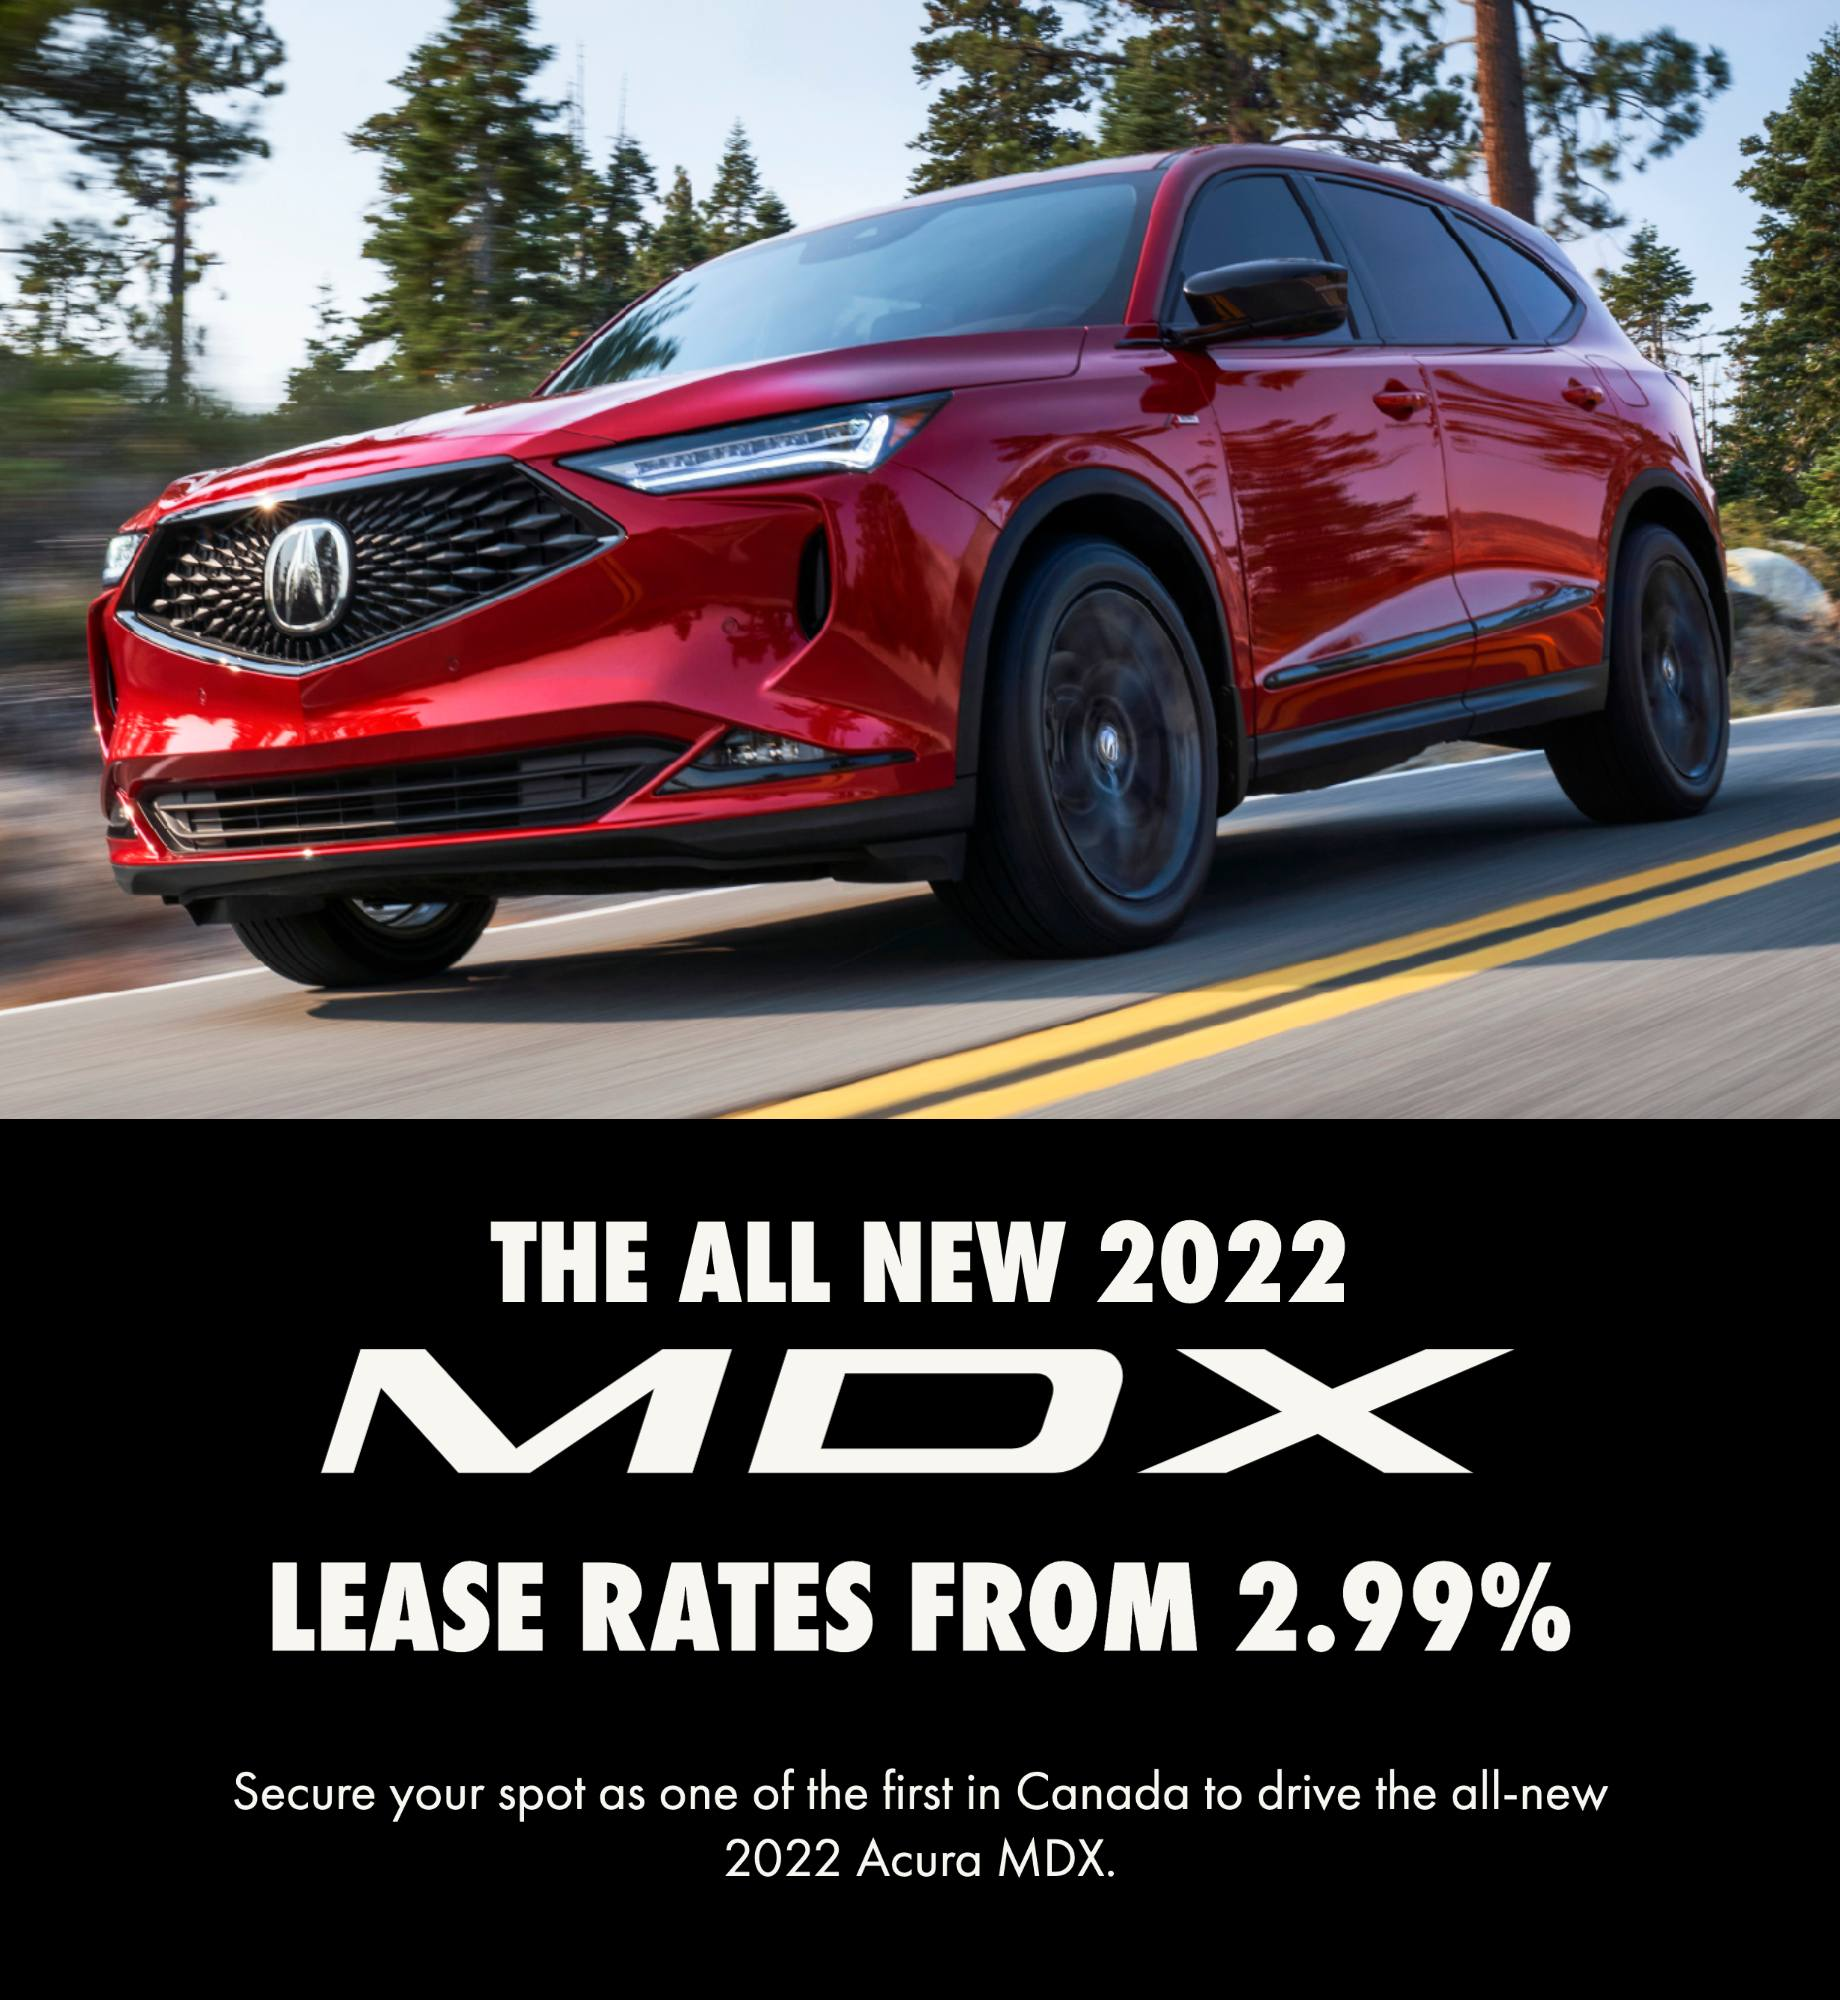 Reserve your all-new 2022 MDX!